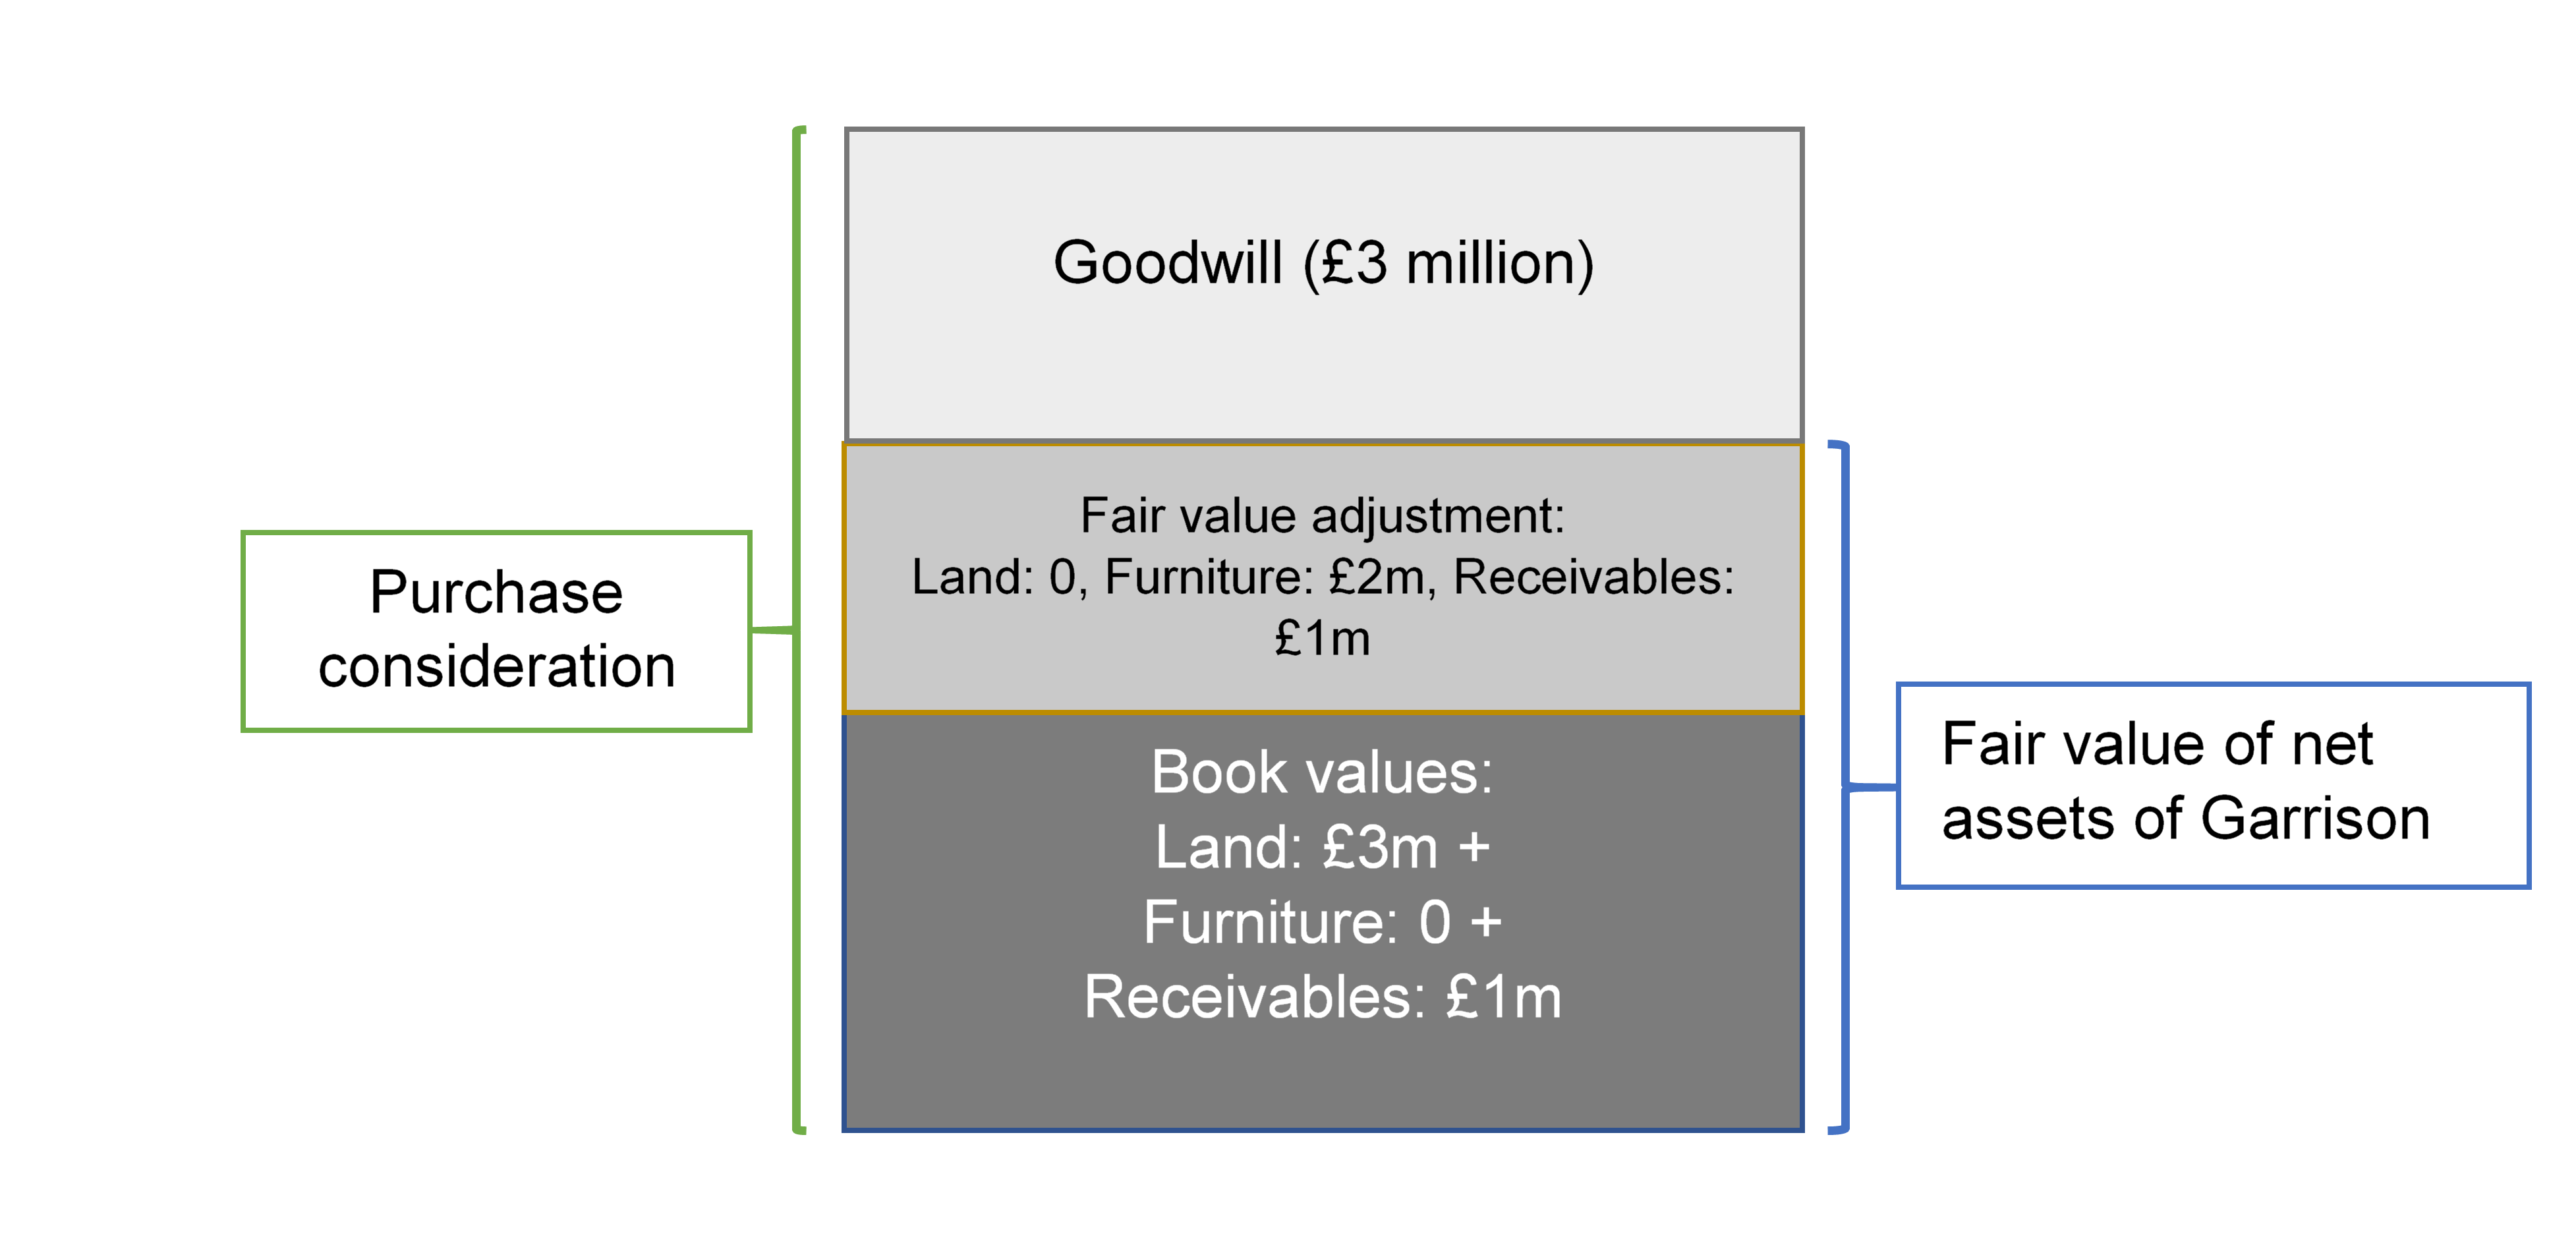 Goodwill Calculation and Allocation b/w Parent and NCI